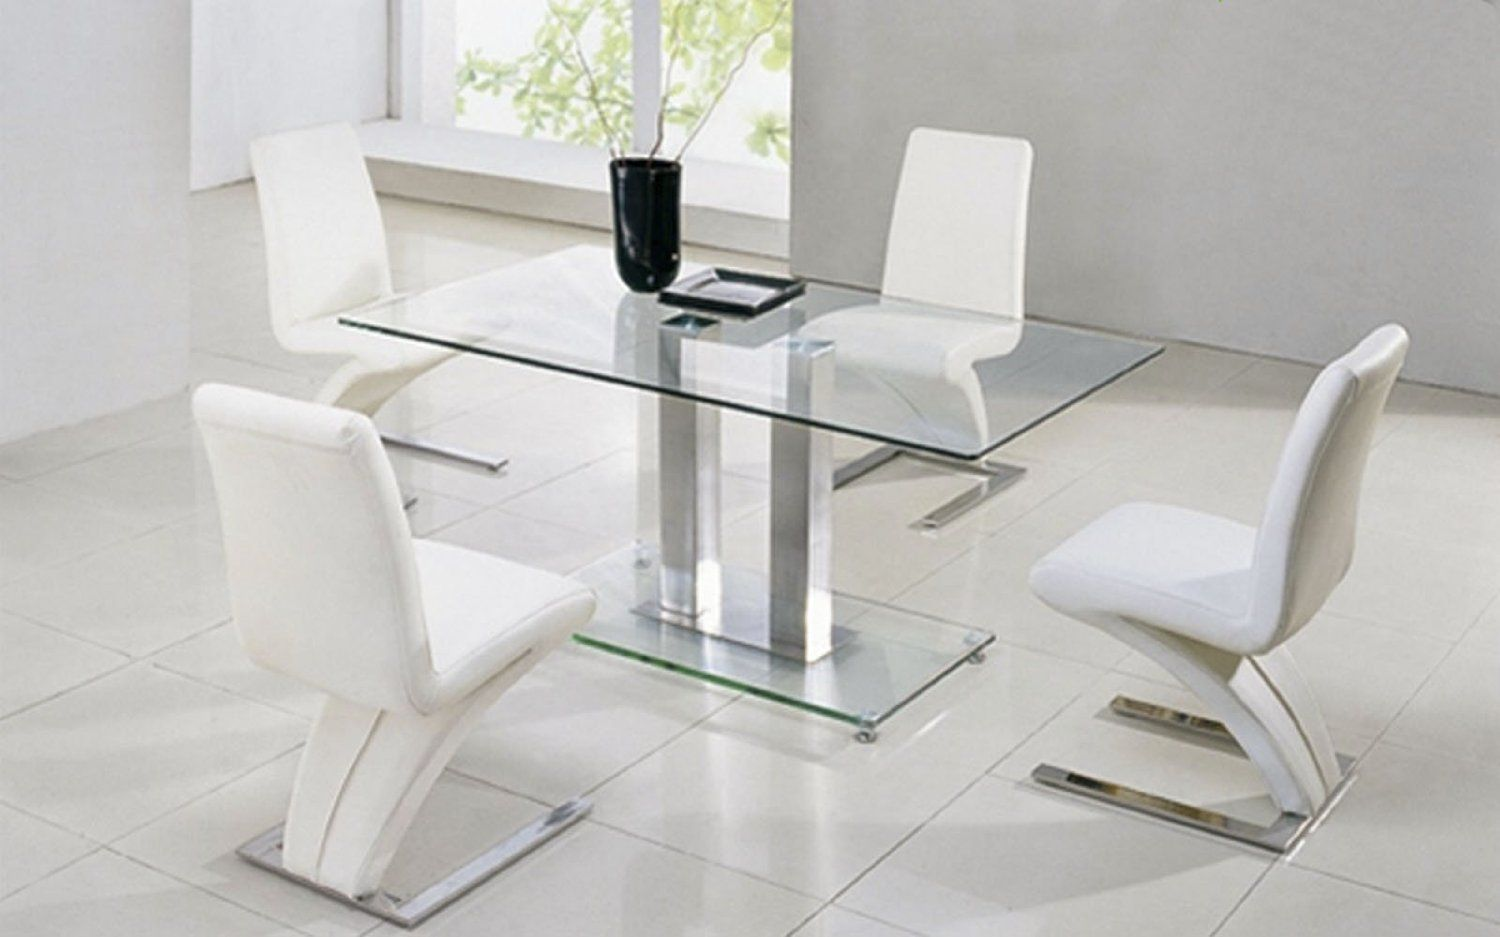 Designer Dining Table And Chairs Actona Glass Dining Table With 4 Designer 39z 39 Chairs In